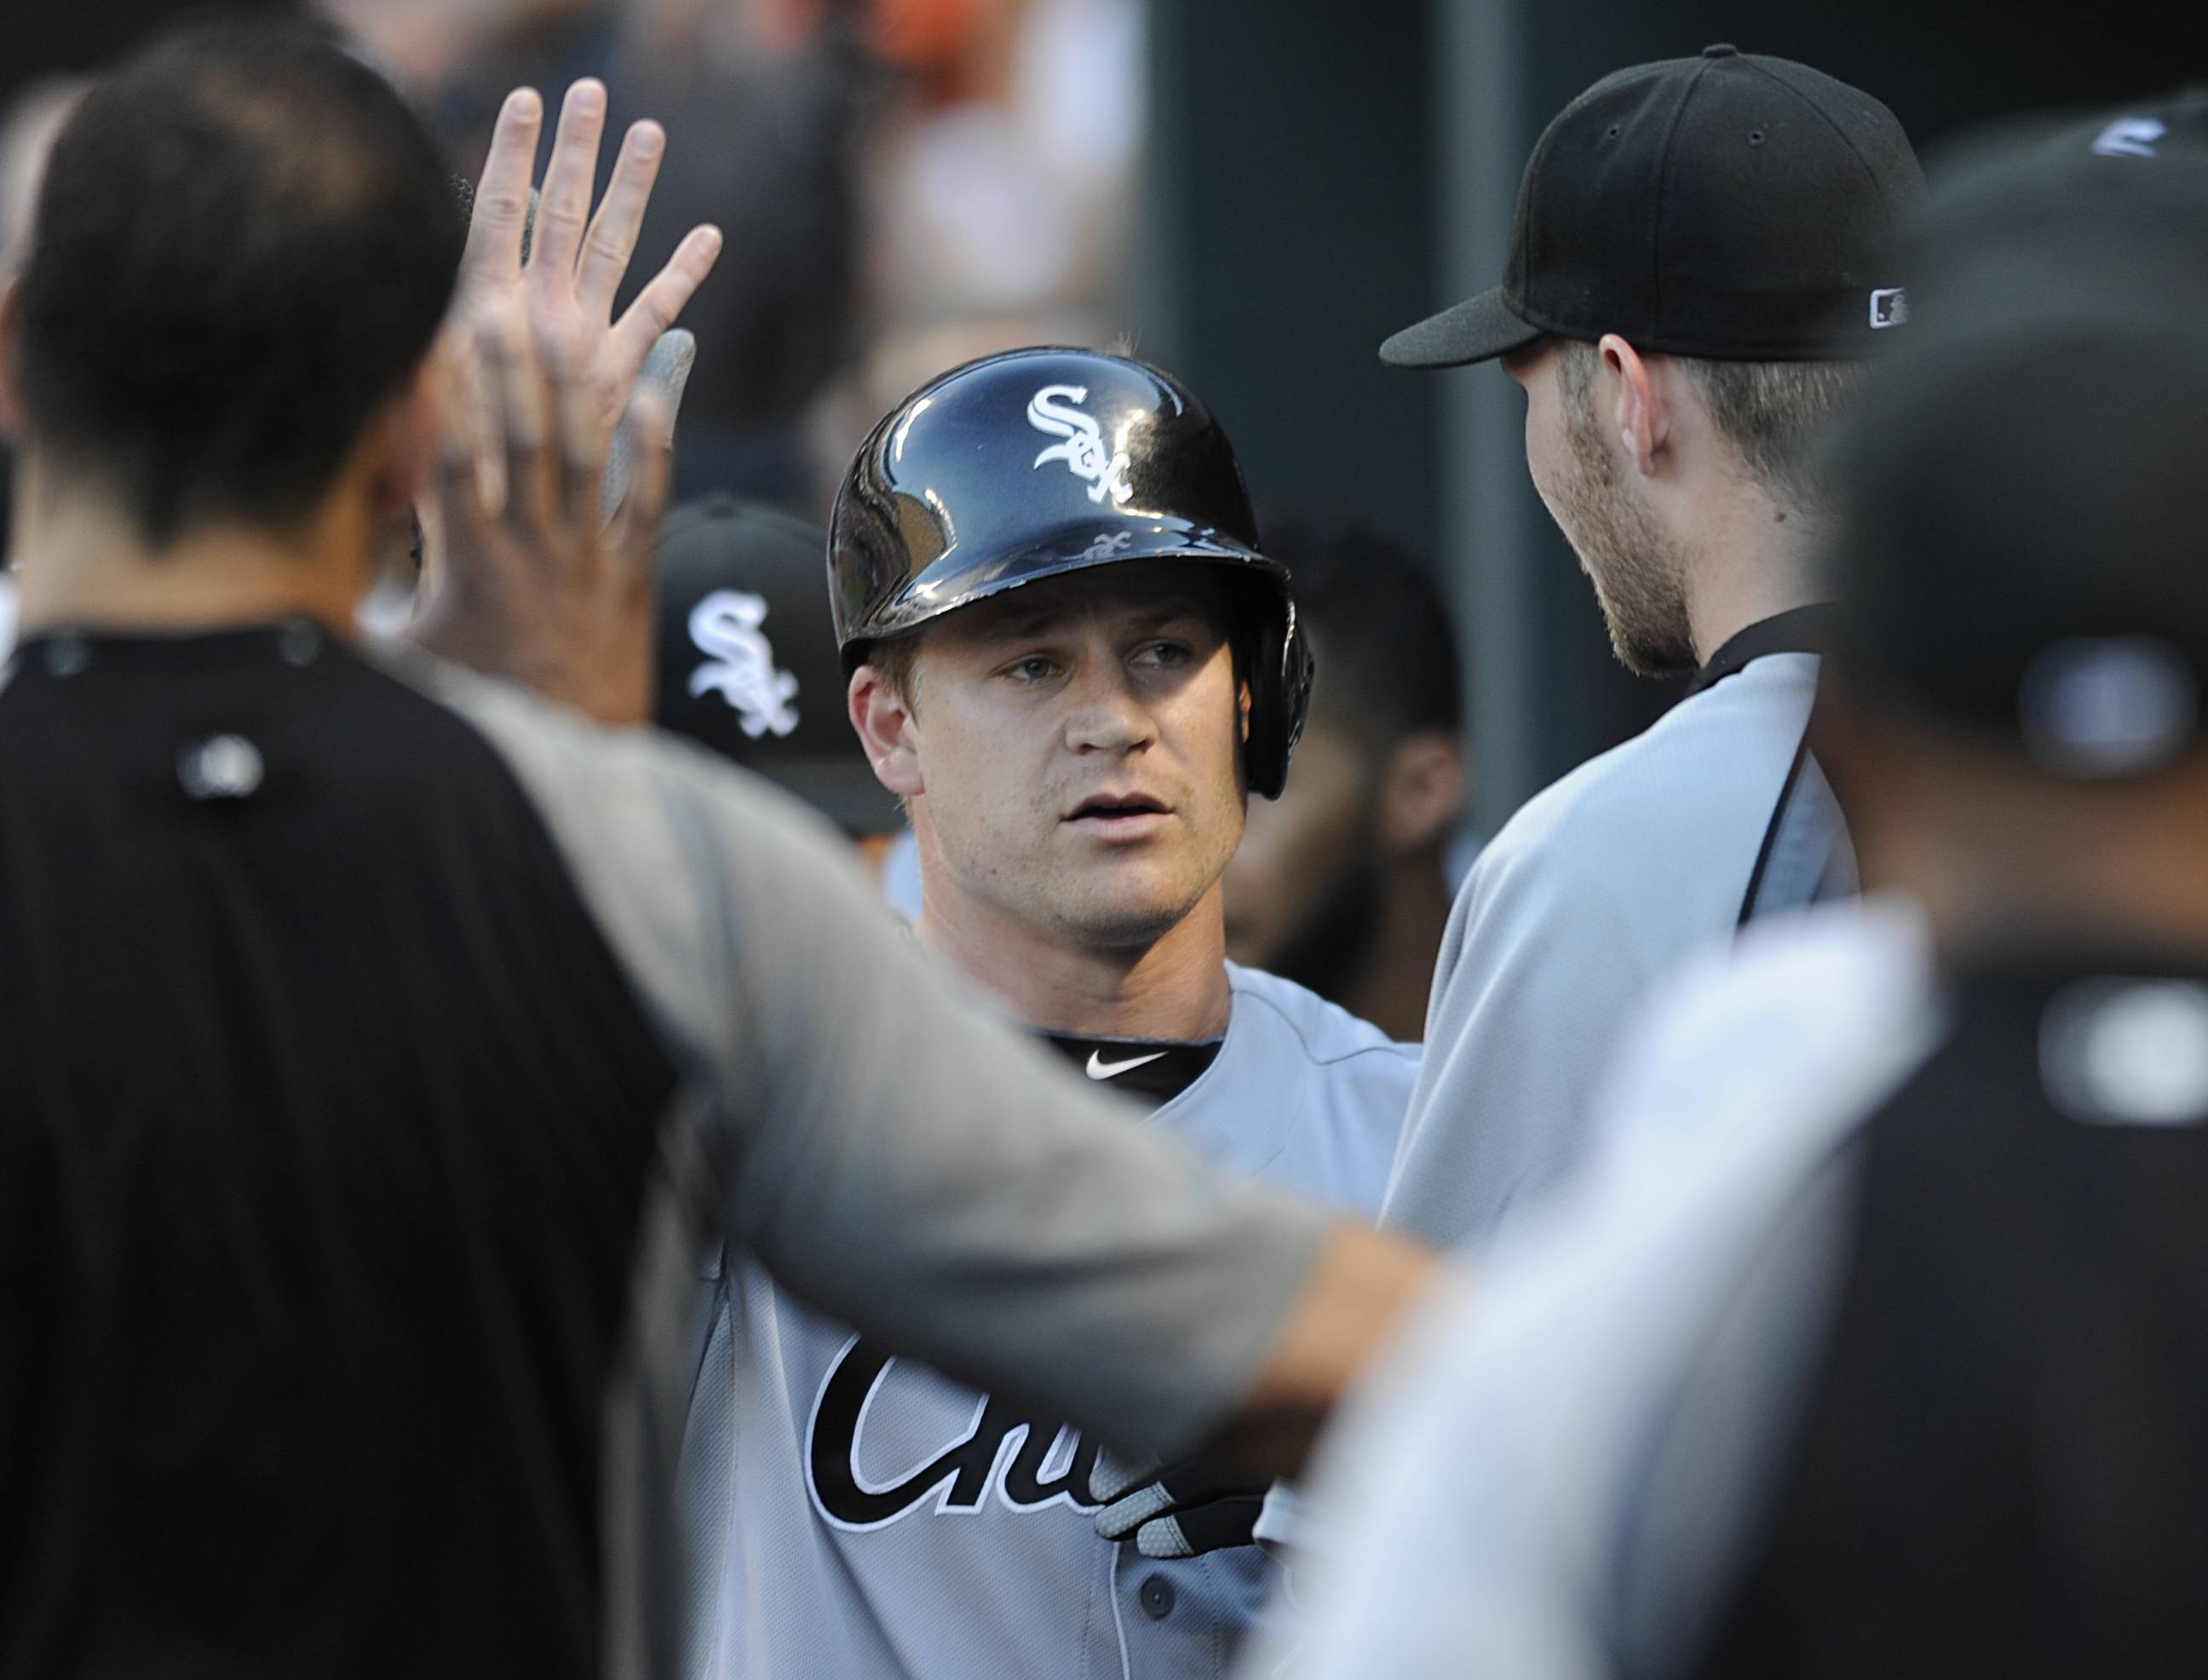 Chicago White Sox second baseman Gordan Beckham, center, is congratulated in the dugout after hitting a solo home run against the Baltimore Orioles in the first inning of a baseball game, Tuesday, June 24, 2014, in Baltimore.